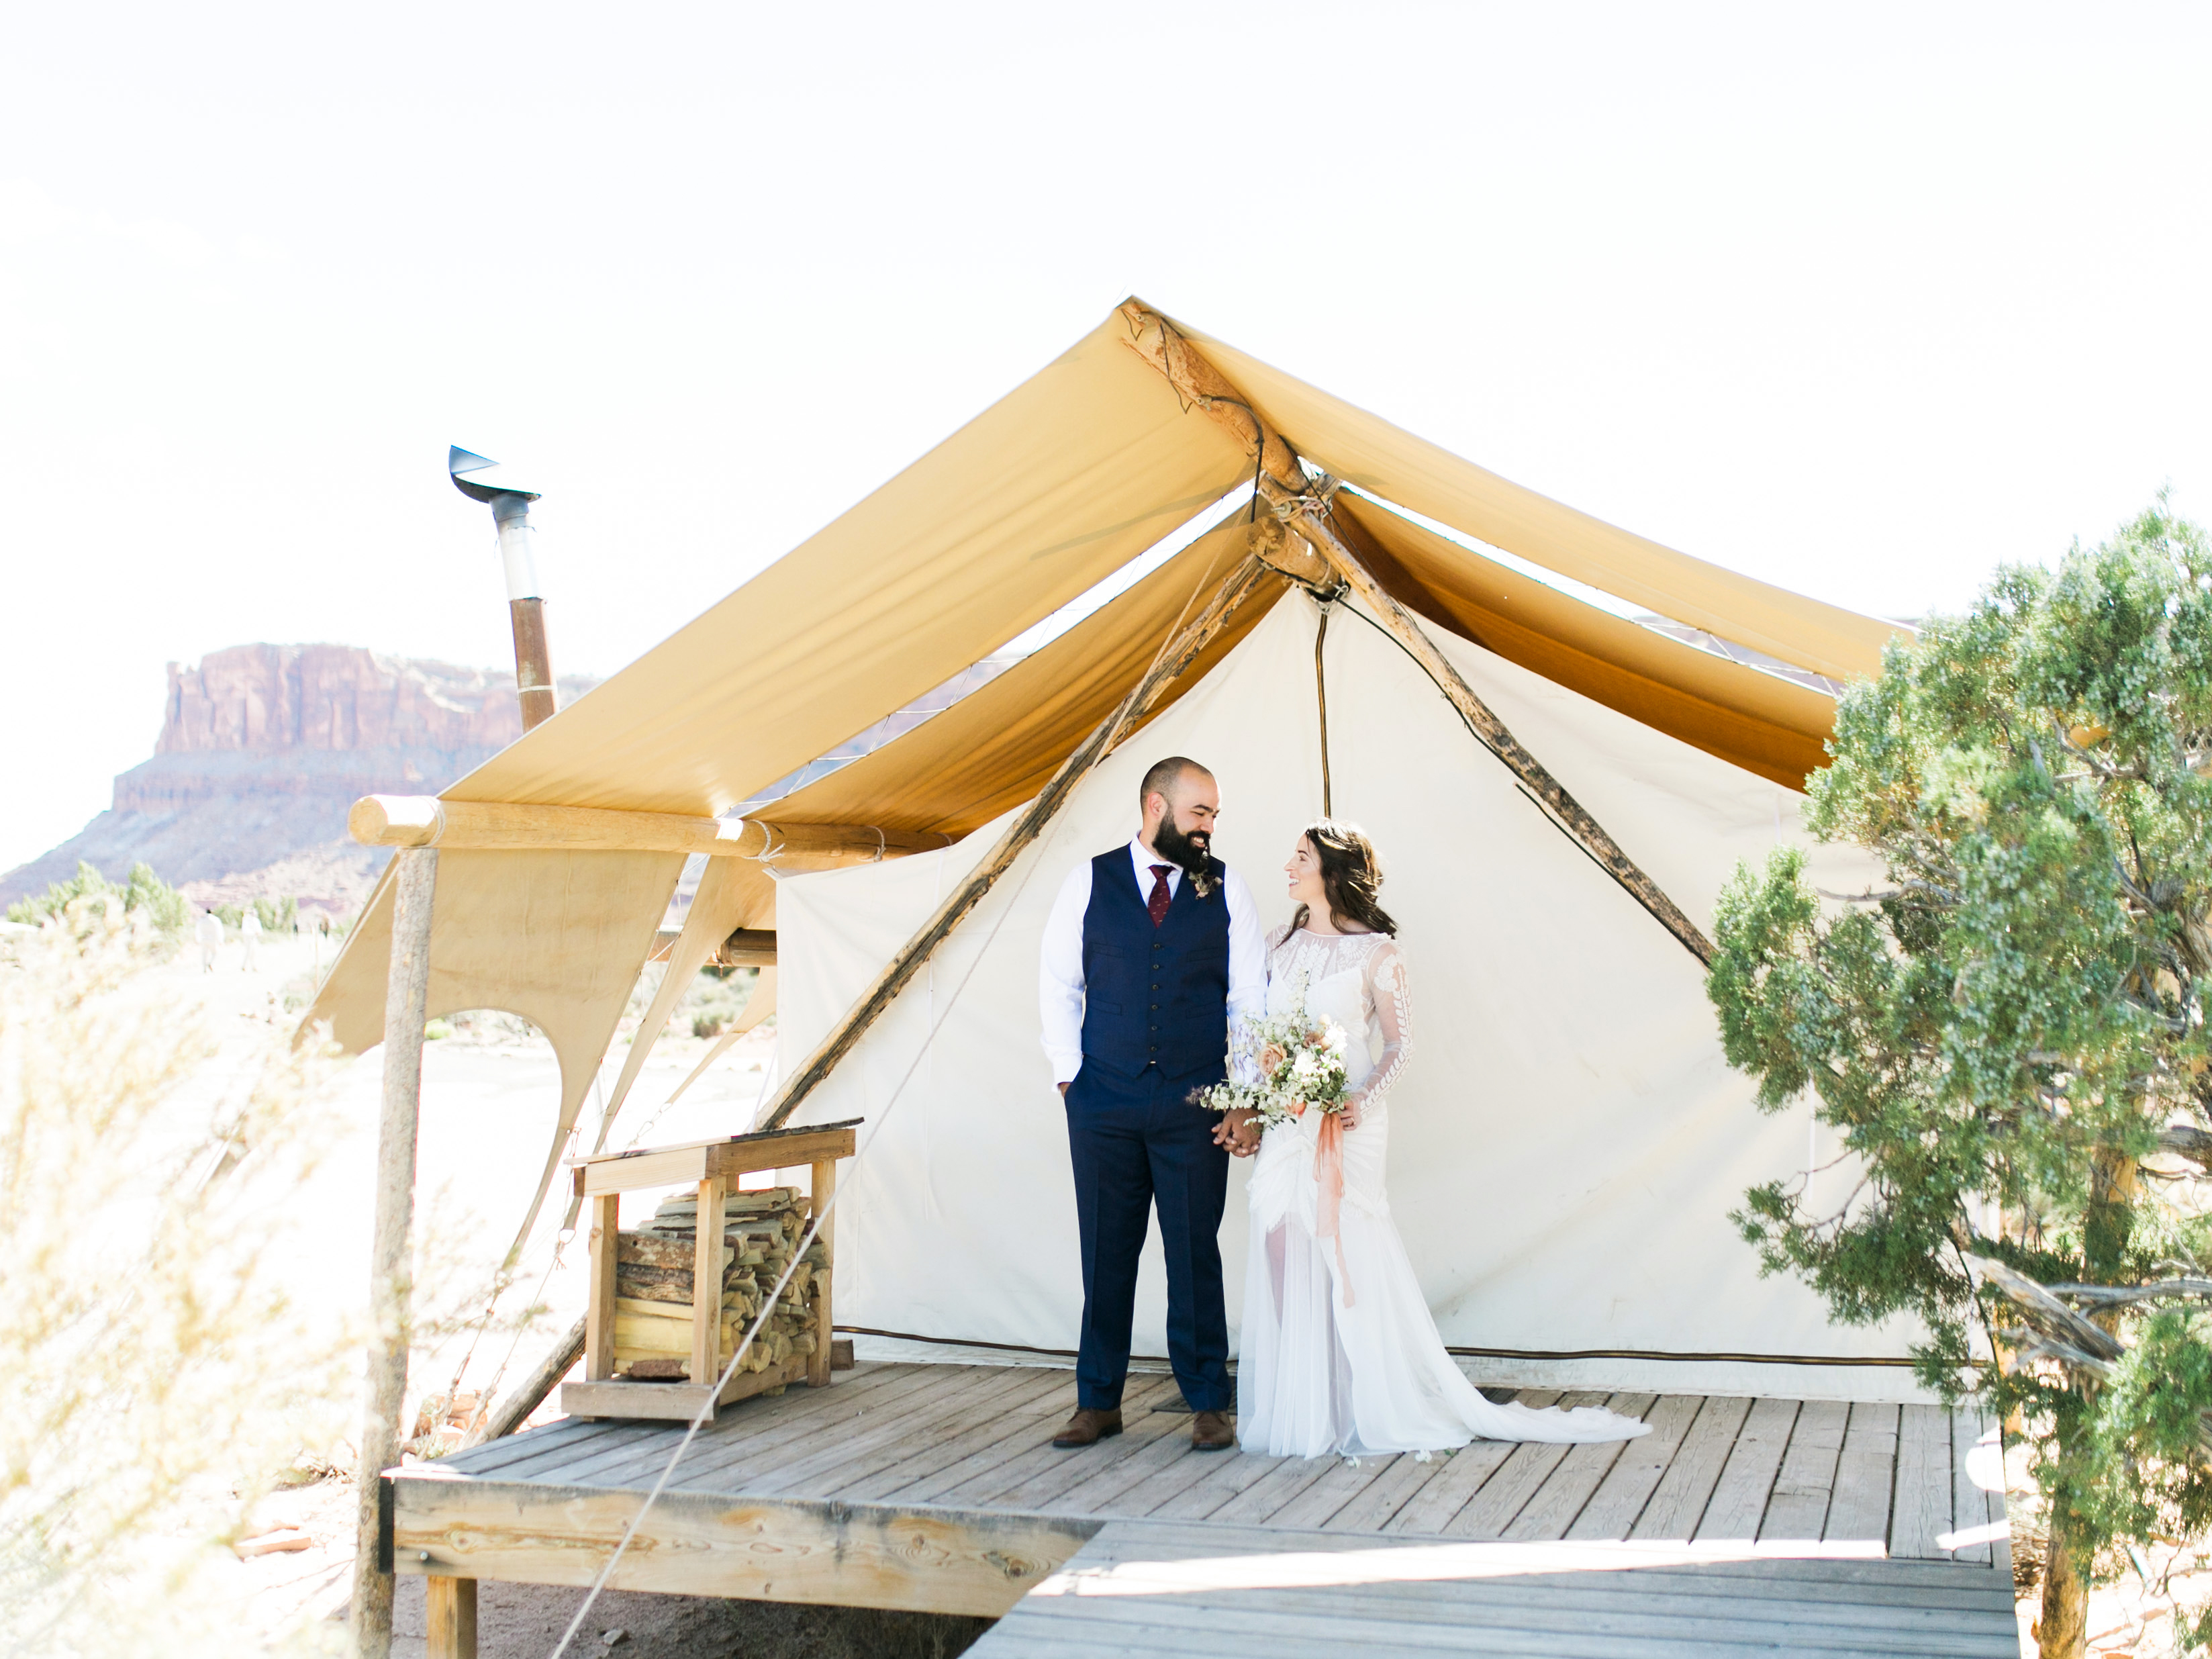 jeanette david wedding couple under tent